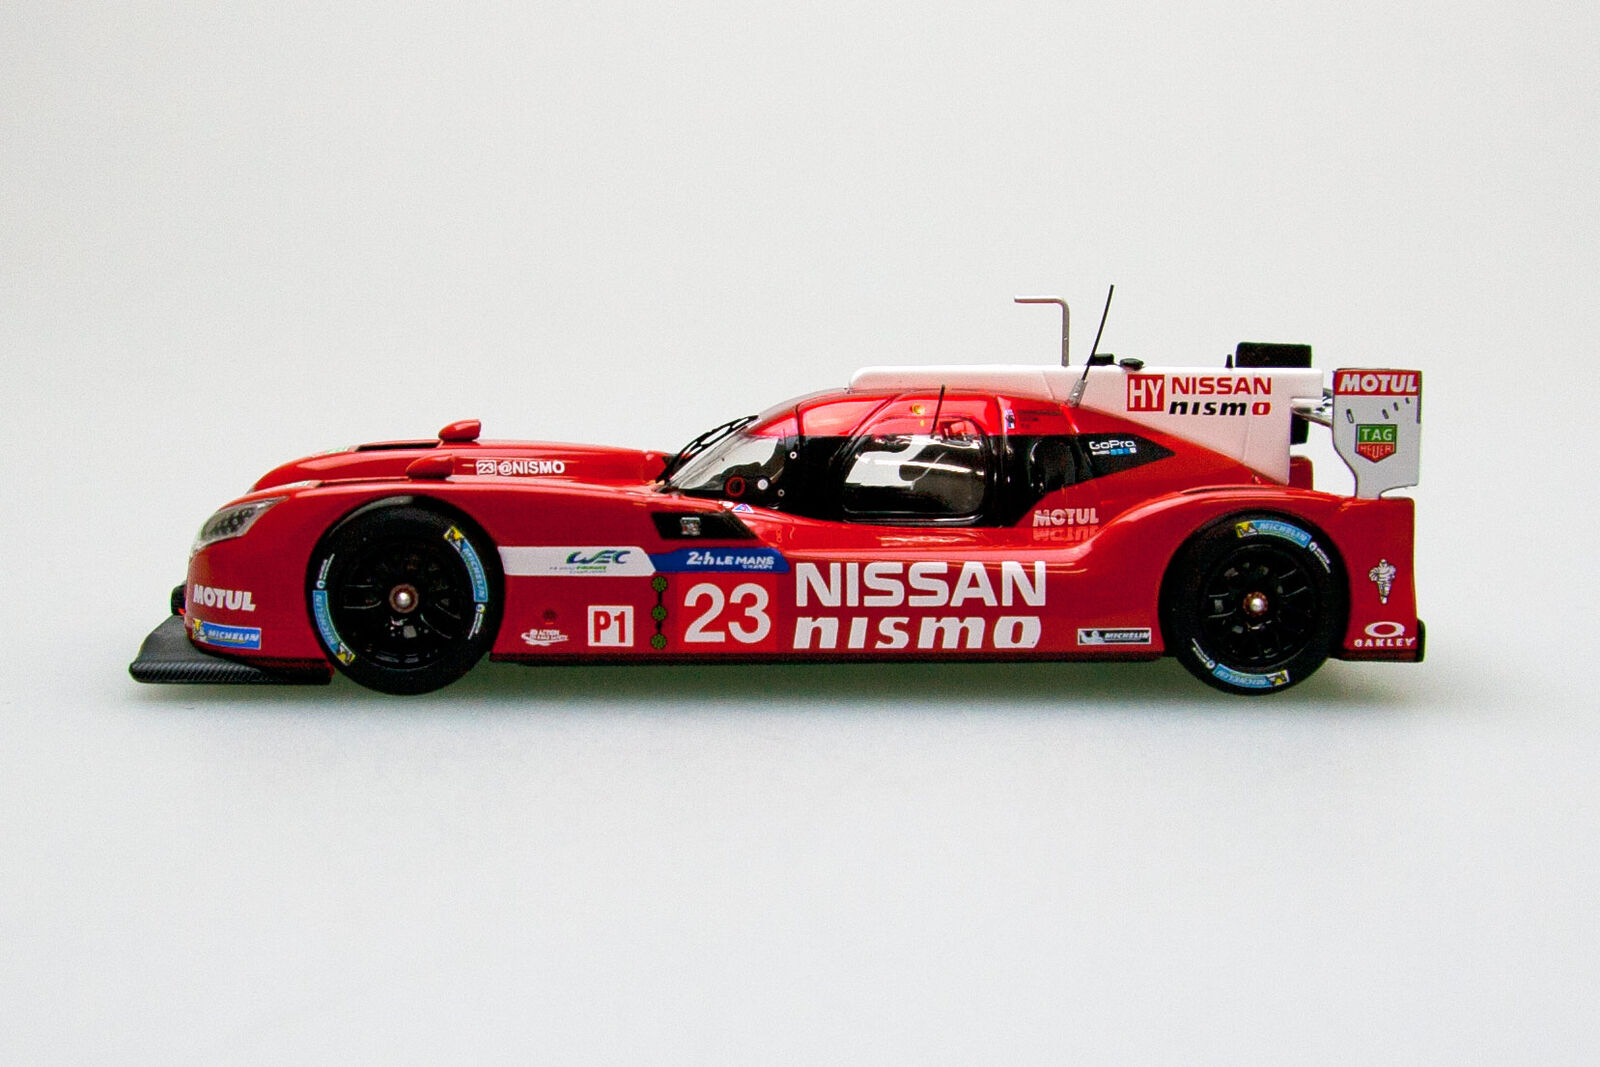 EBBRO 45256 1:43 Nissan GT-R LM nismo Le Mans 24h  23 rosso